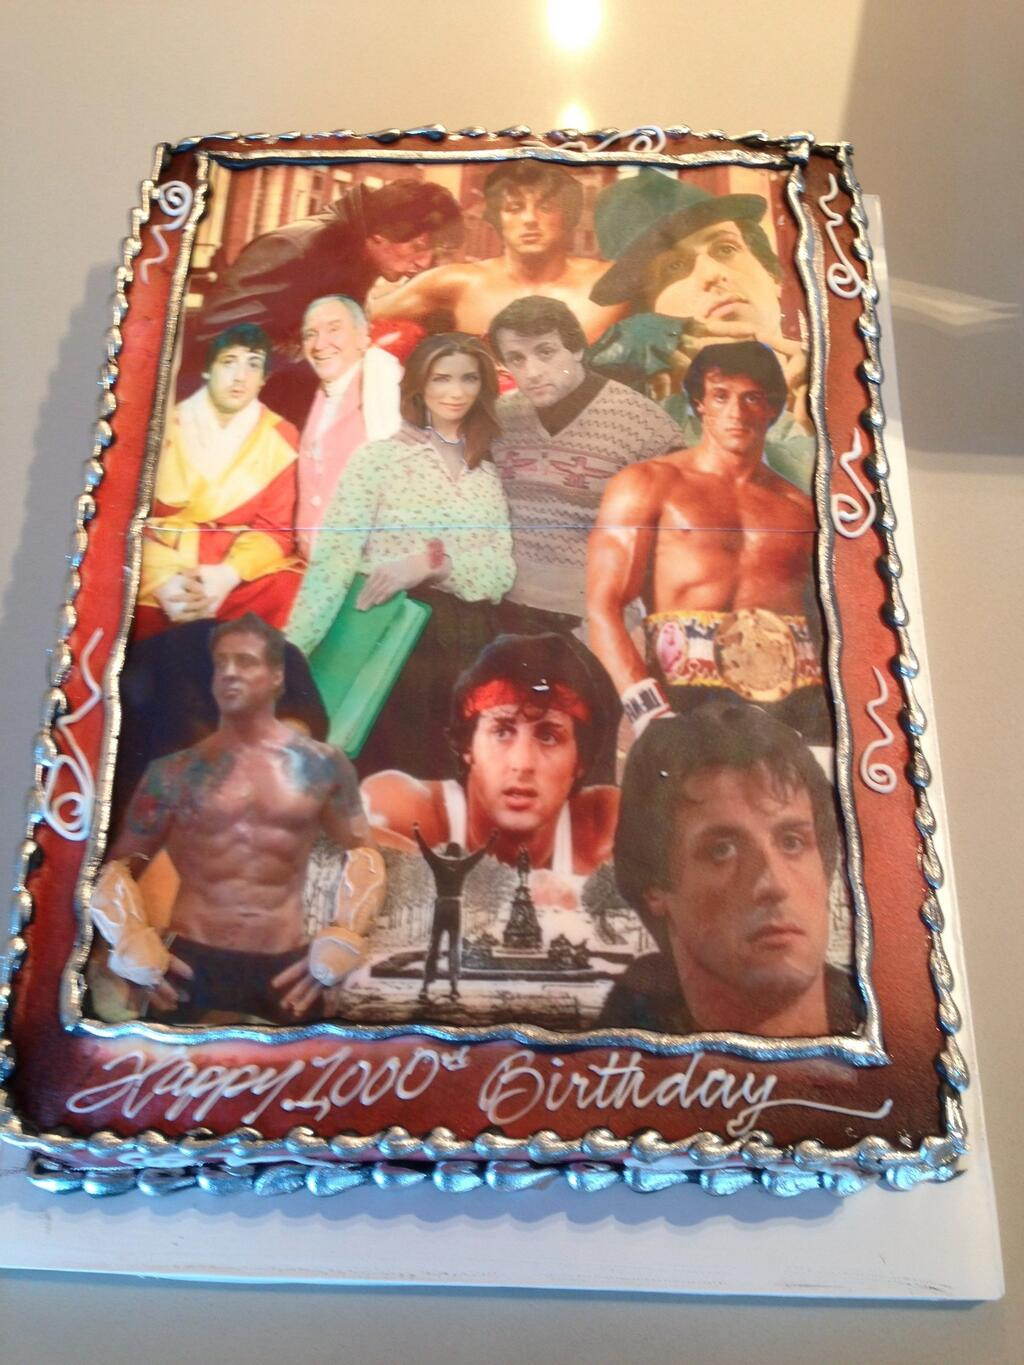 sly stallone birthday cake